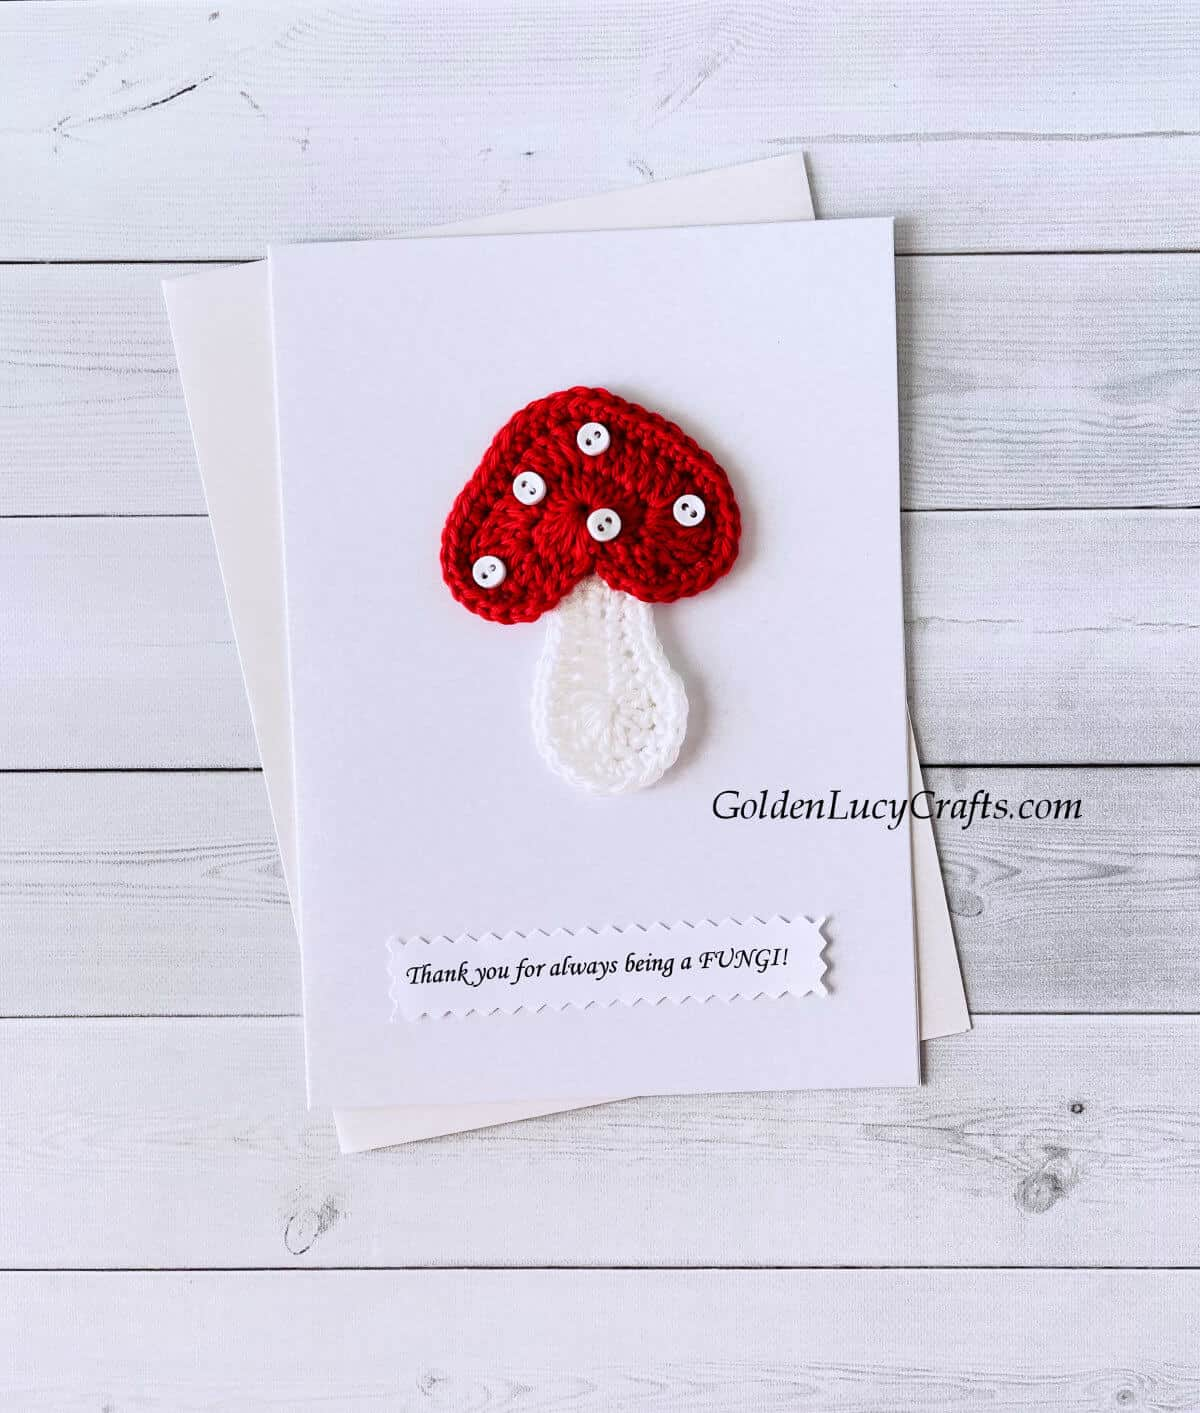 """Crochet mushroom on a white card with the text """"Thank you for always being a fungi!"""""""